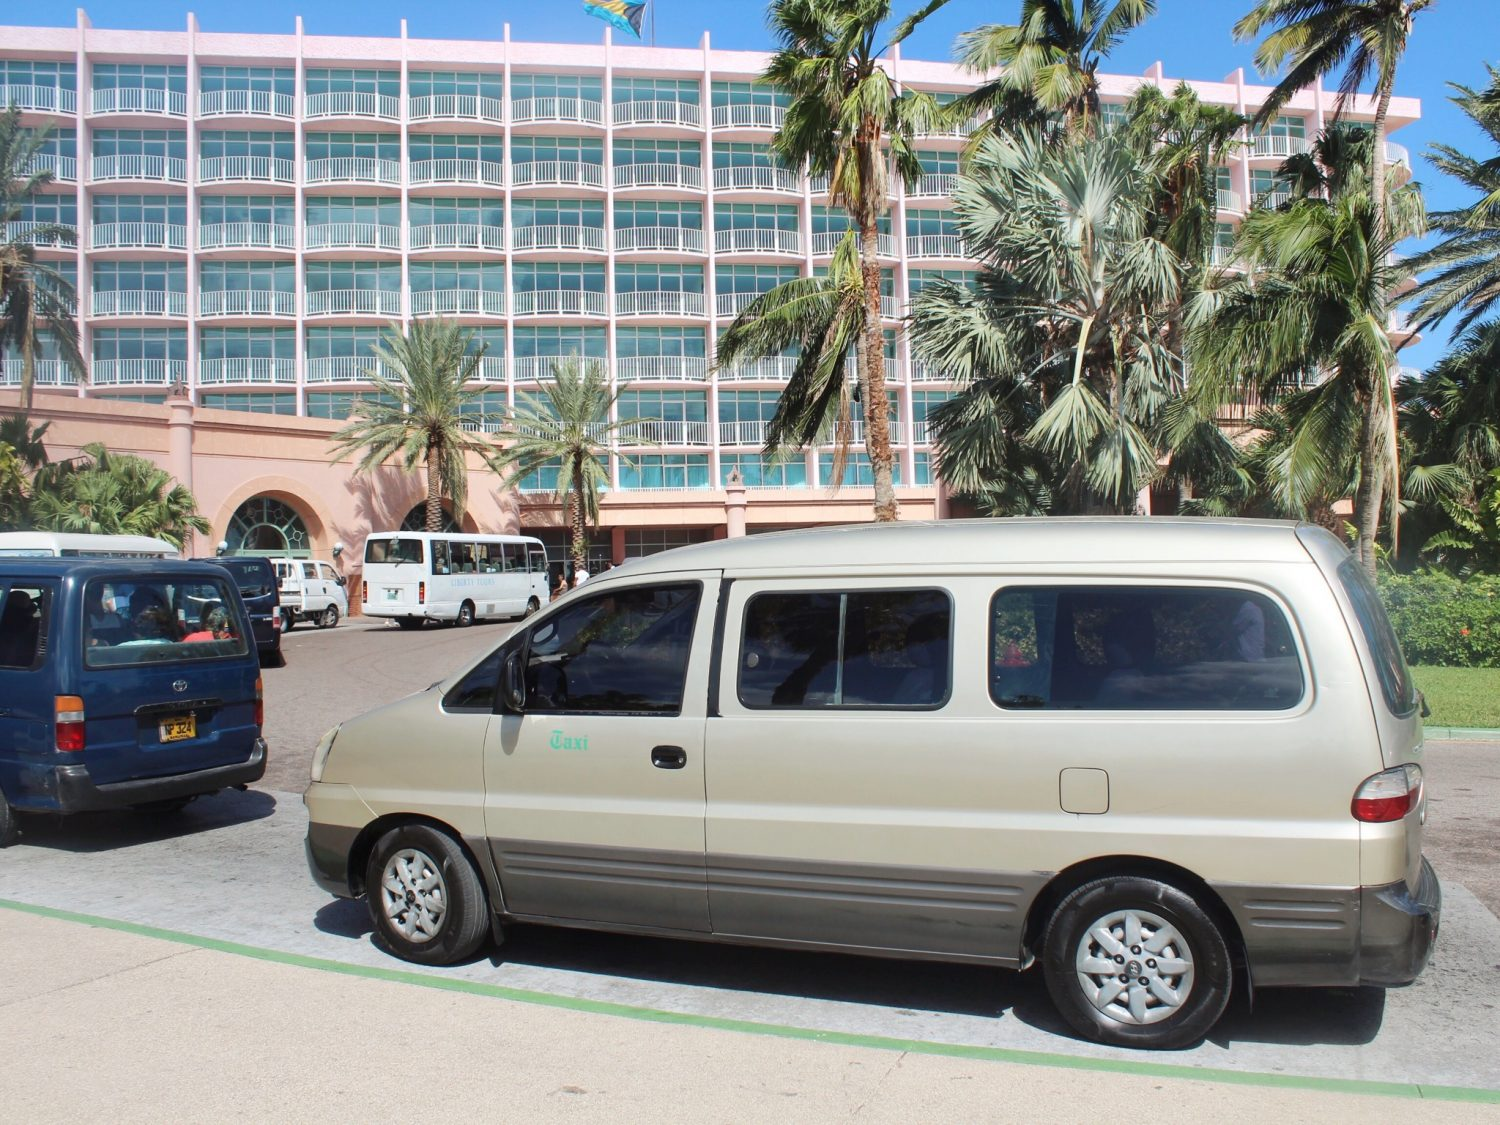 Atlantis Paradise Island Resort Taxis